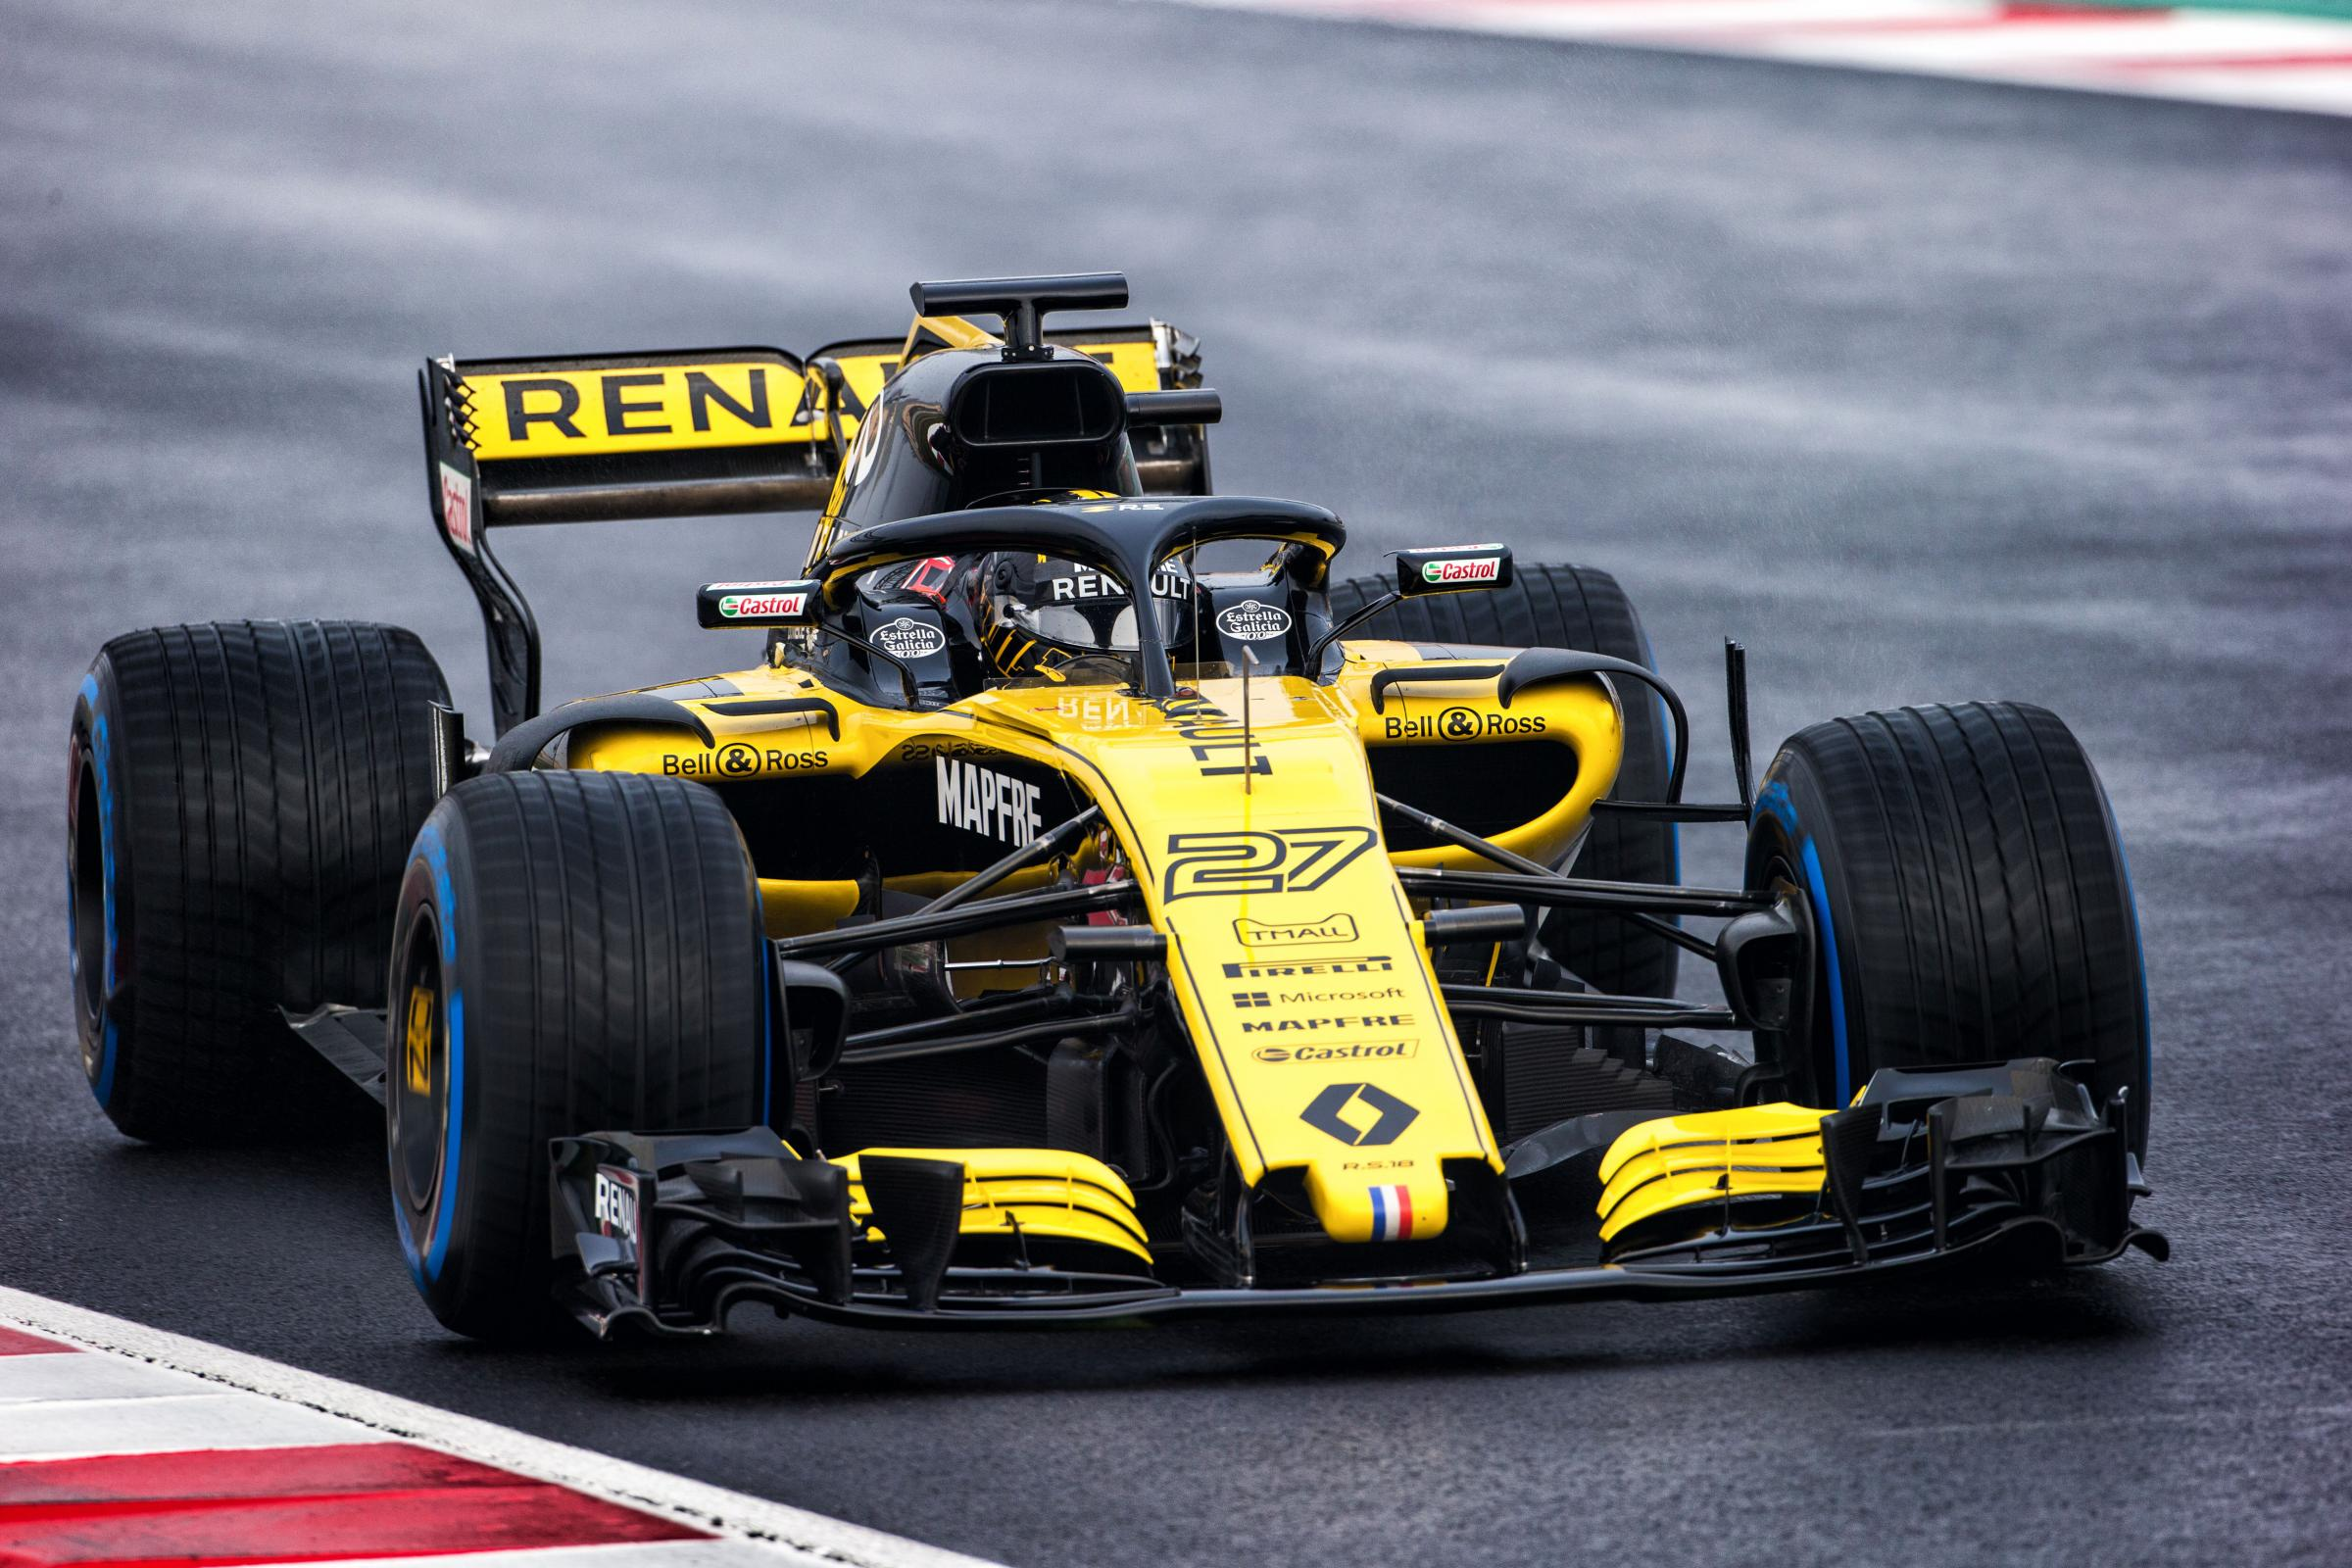 CHALLENGE: Nico Hulkenberg is looking to continue Renault's good start to the season in Montreal